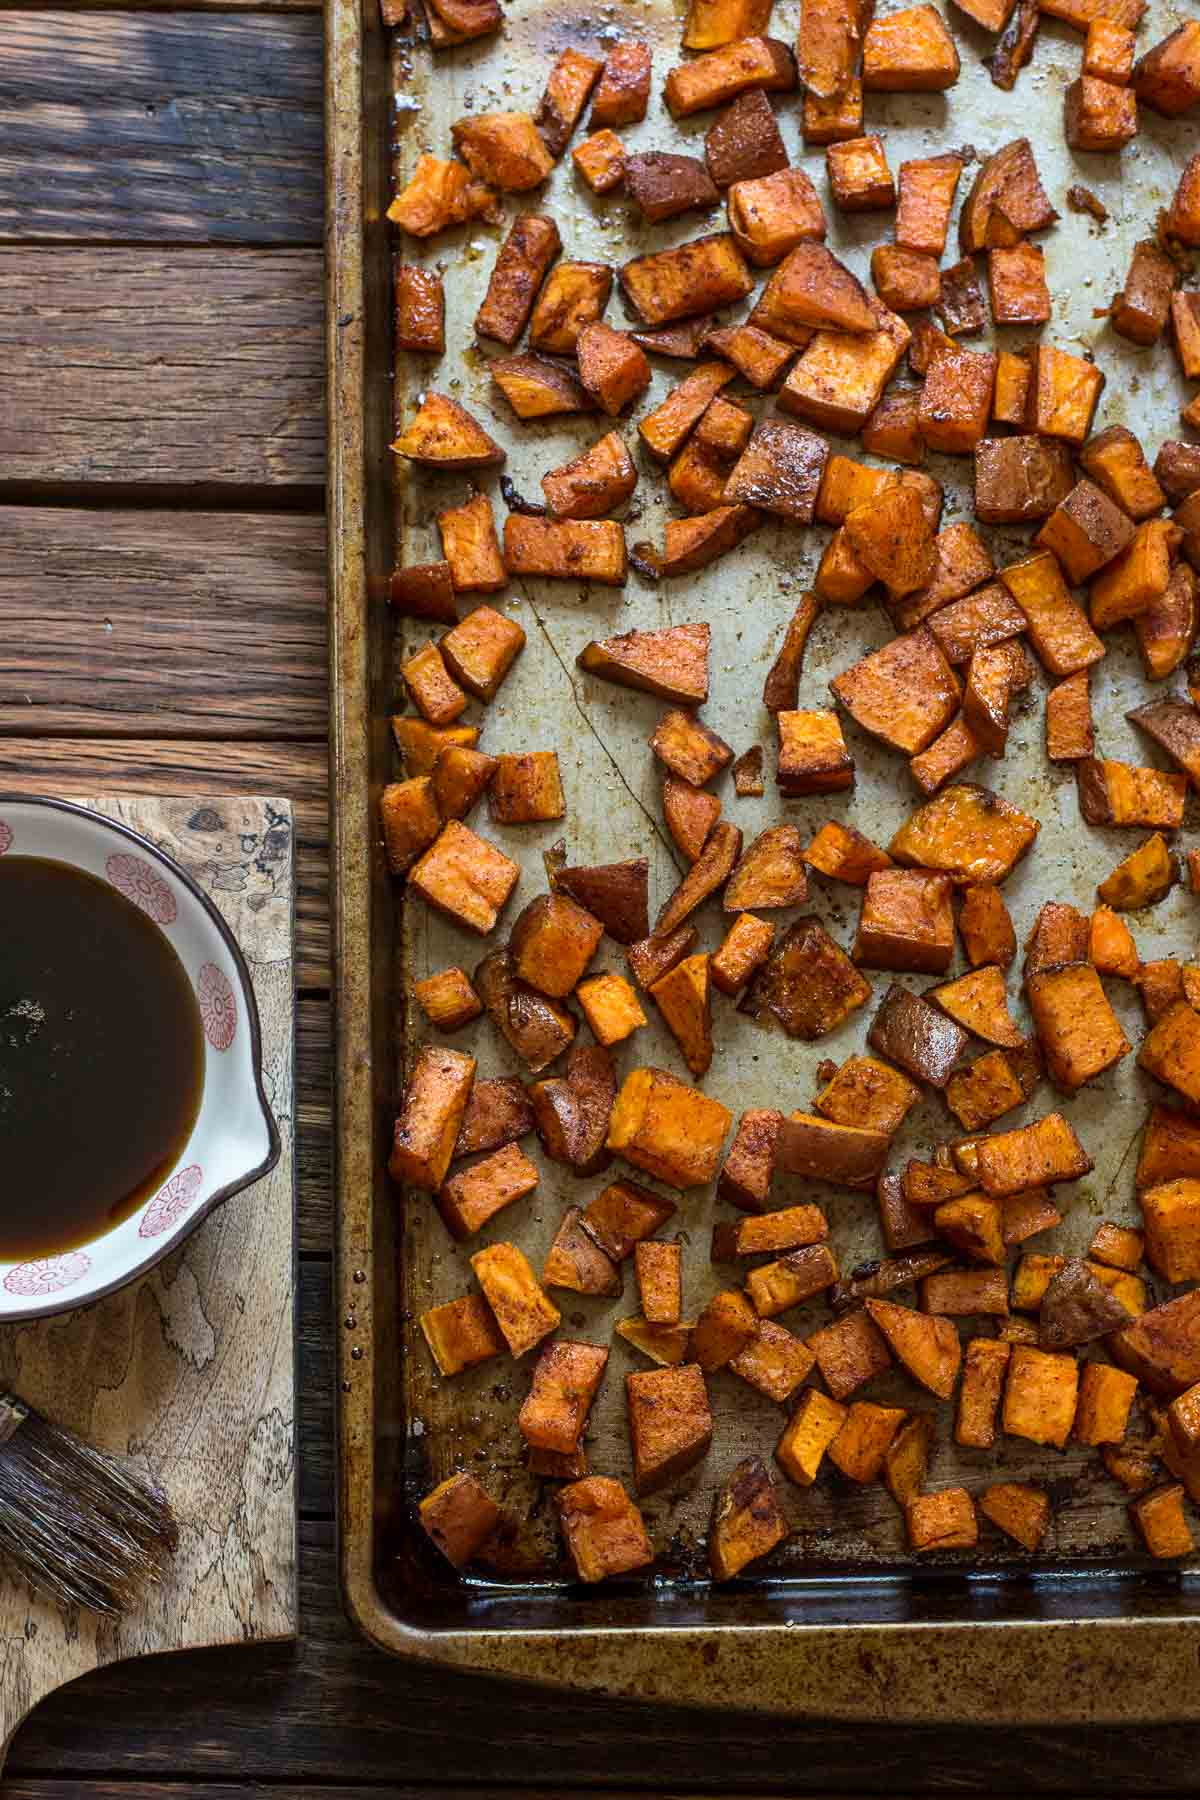 These Maple Roasted Sweet Potatoes are so tender, sweet, and delicious. It's the perfect fall side dish!